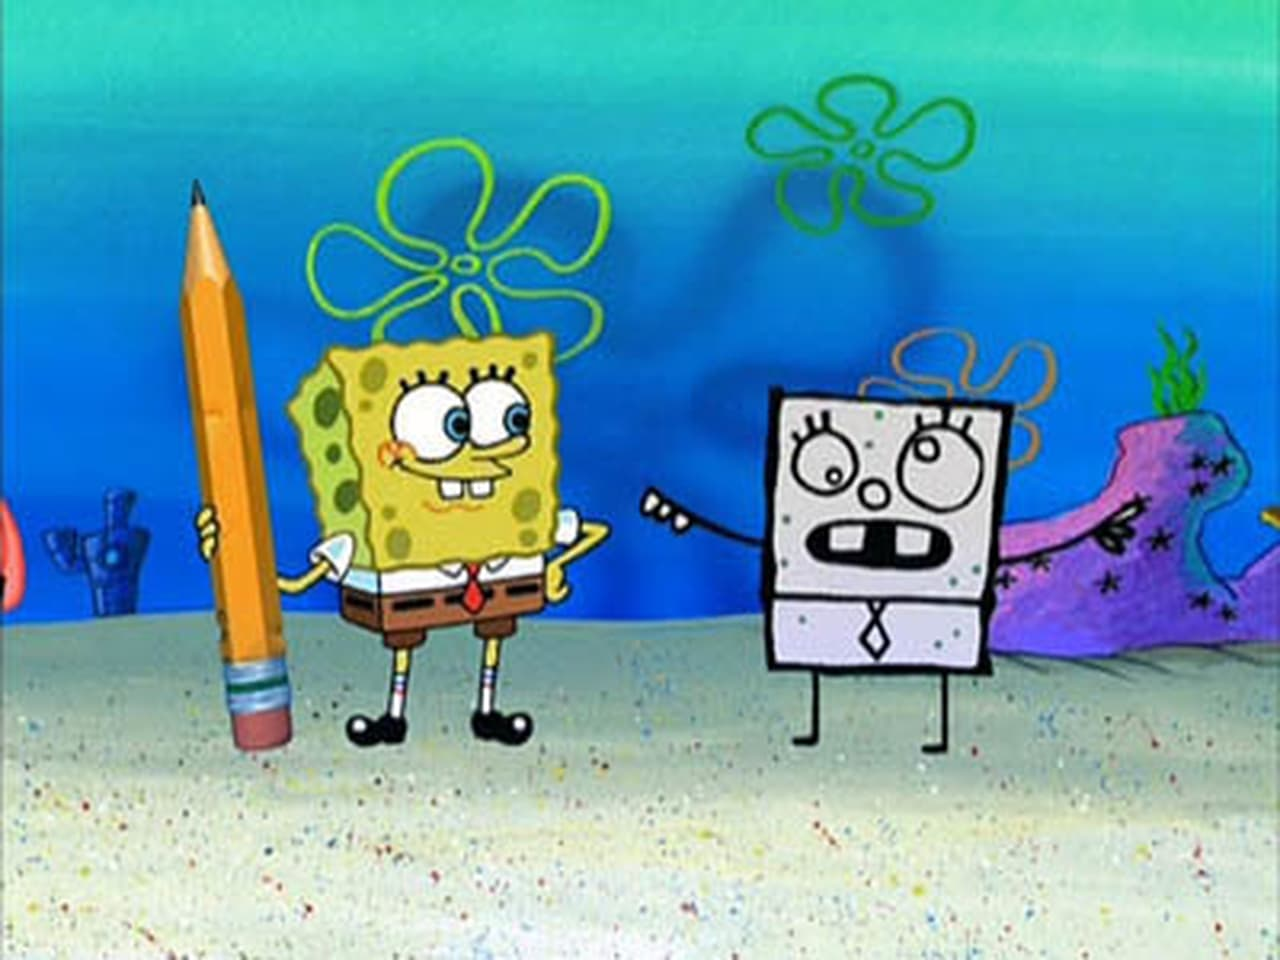 spongebob essay full episode Spongebob squarepants essay full episode, stop getting distracted while doing homework, help with my maths homework a review essay on humanism and sociology.